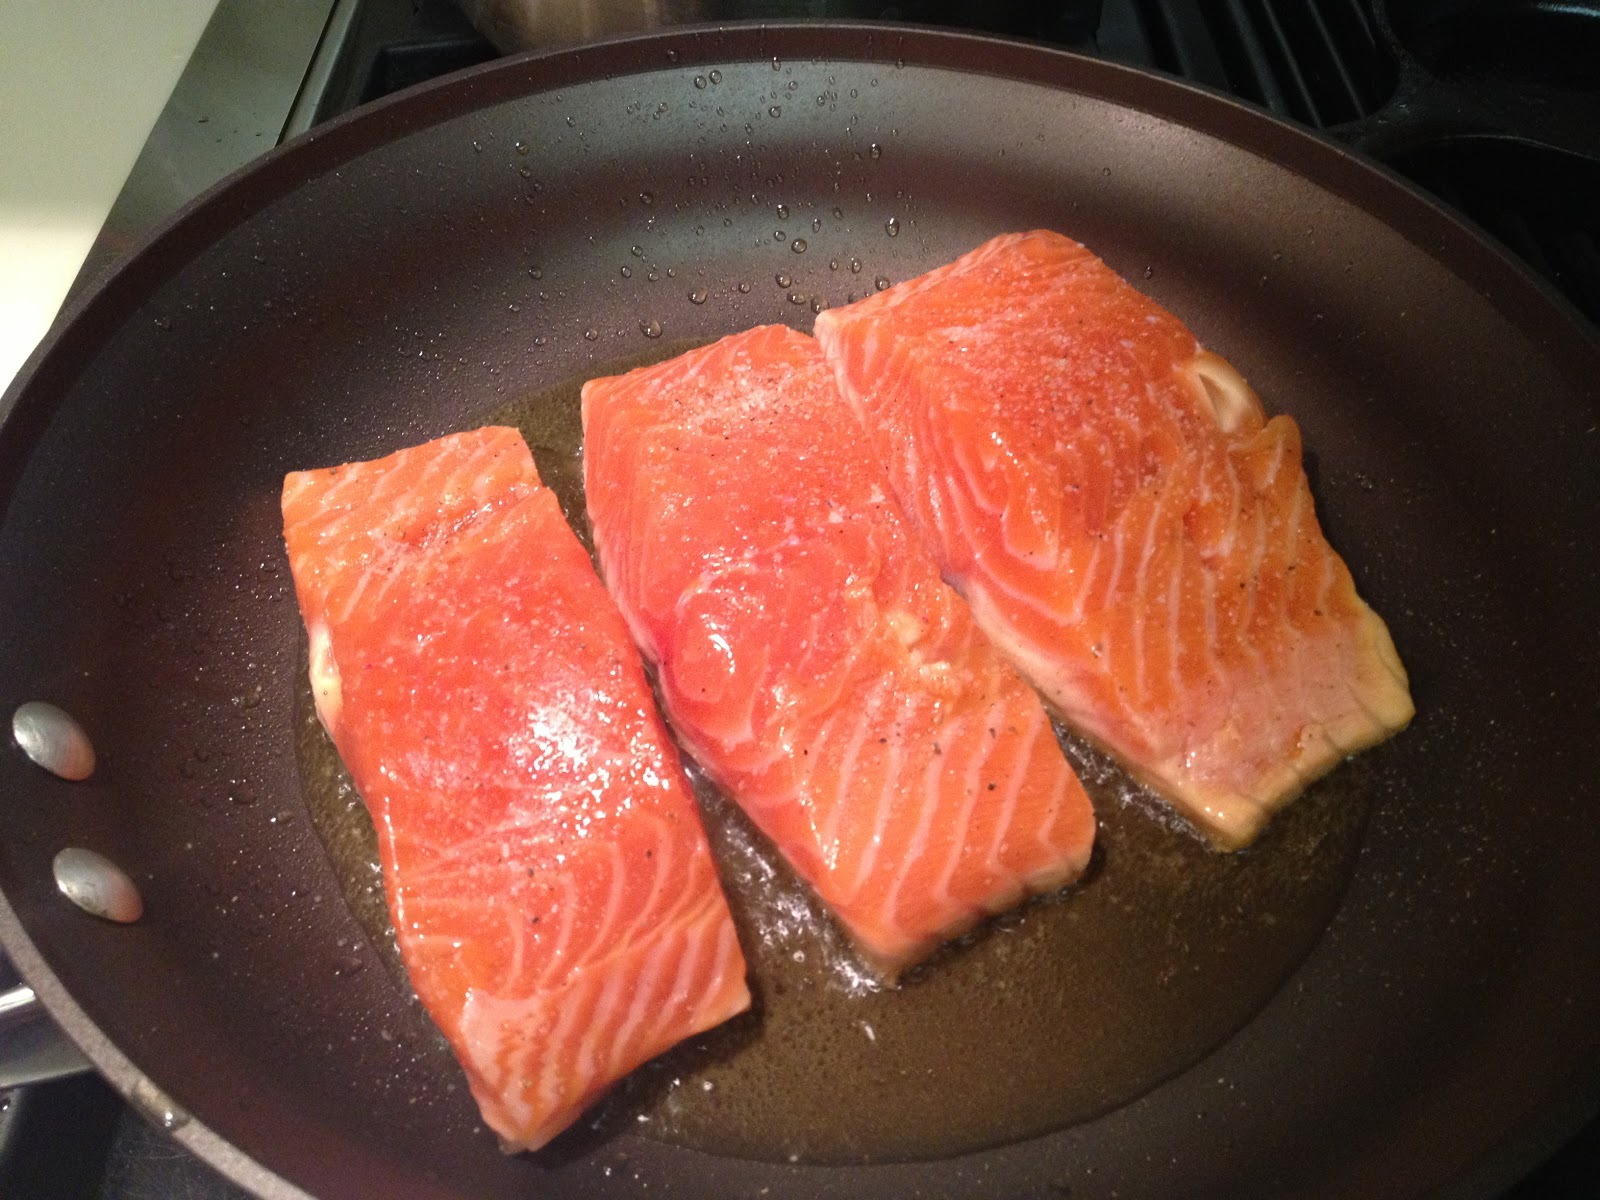 3 Of The Salmon Is Visibly Cooked